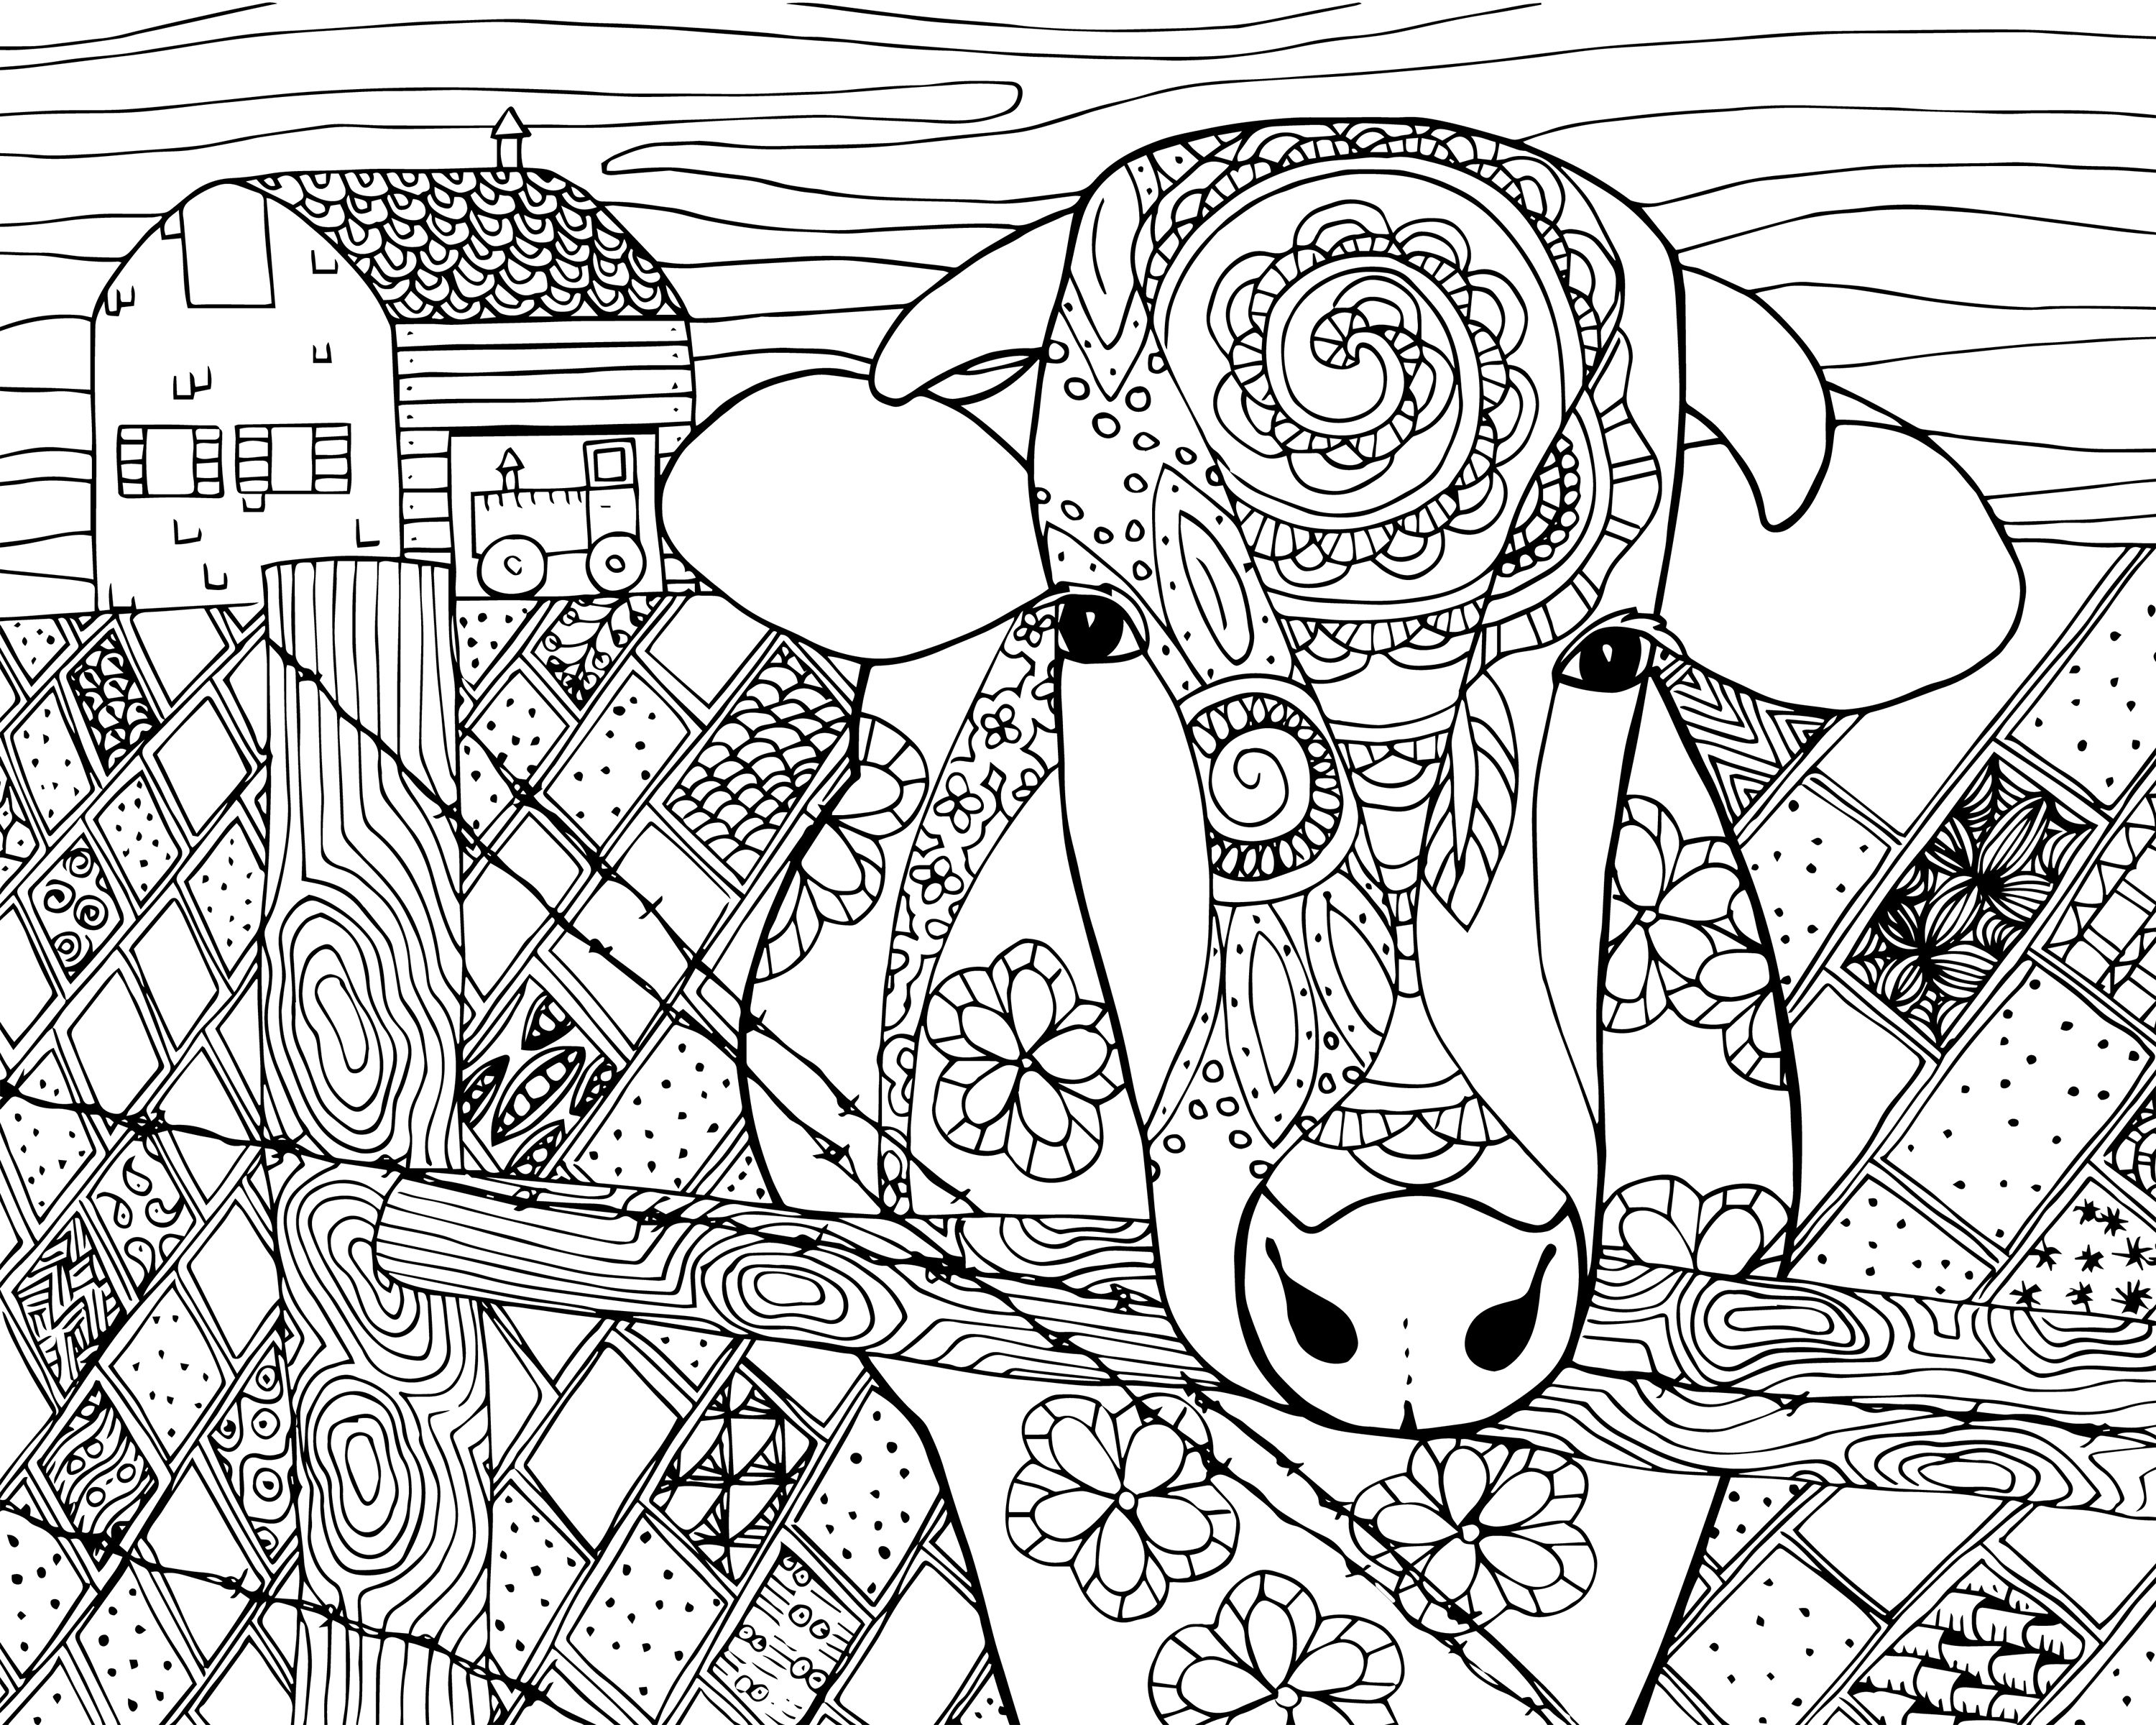 FREE Cow Animal Coloring Page for